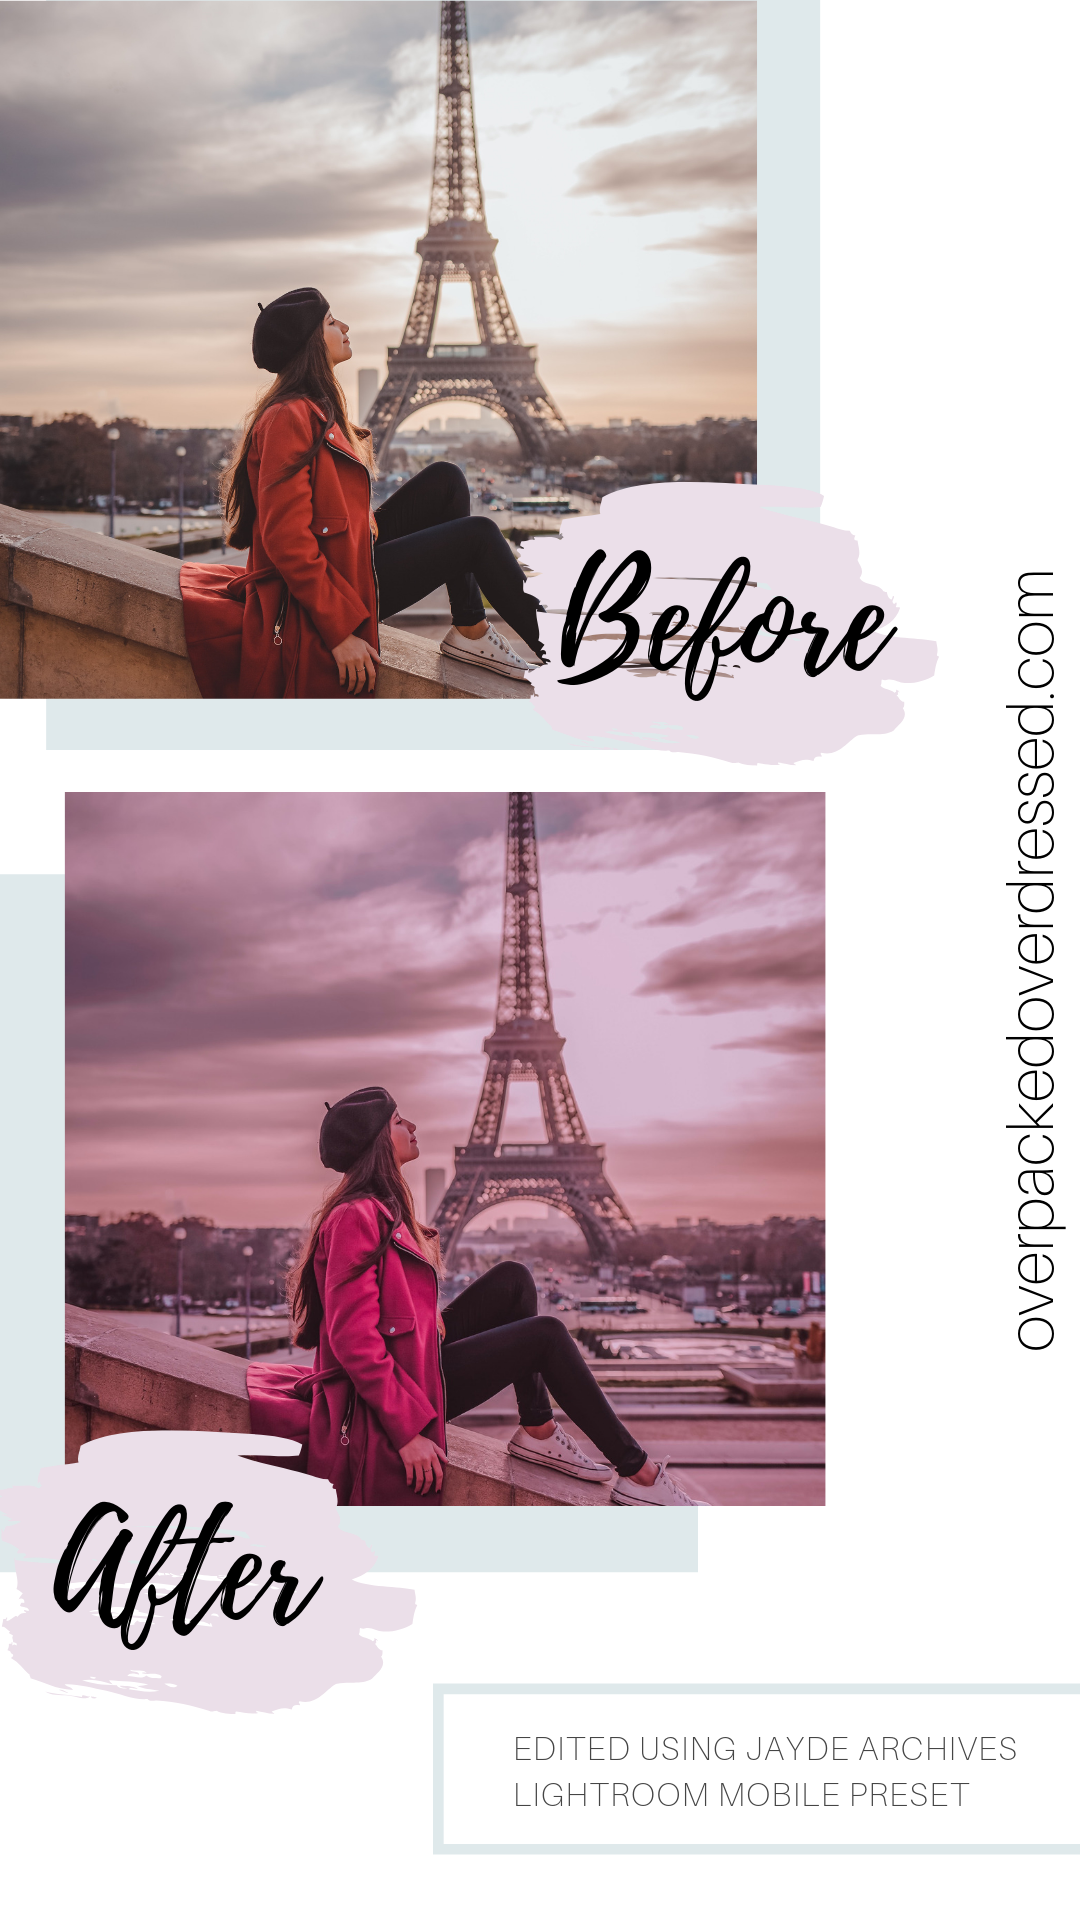 Jayde Archives Pink Presets -Before_After